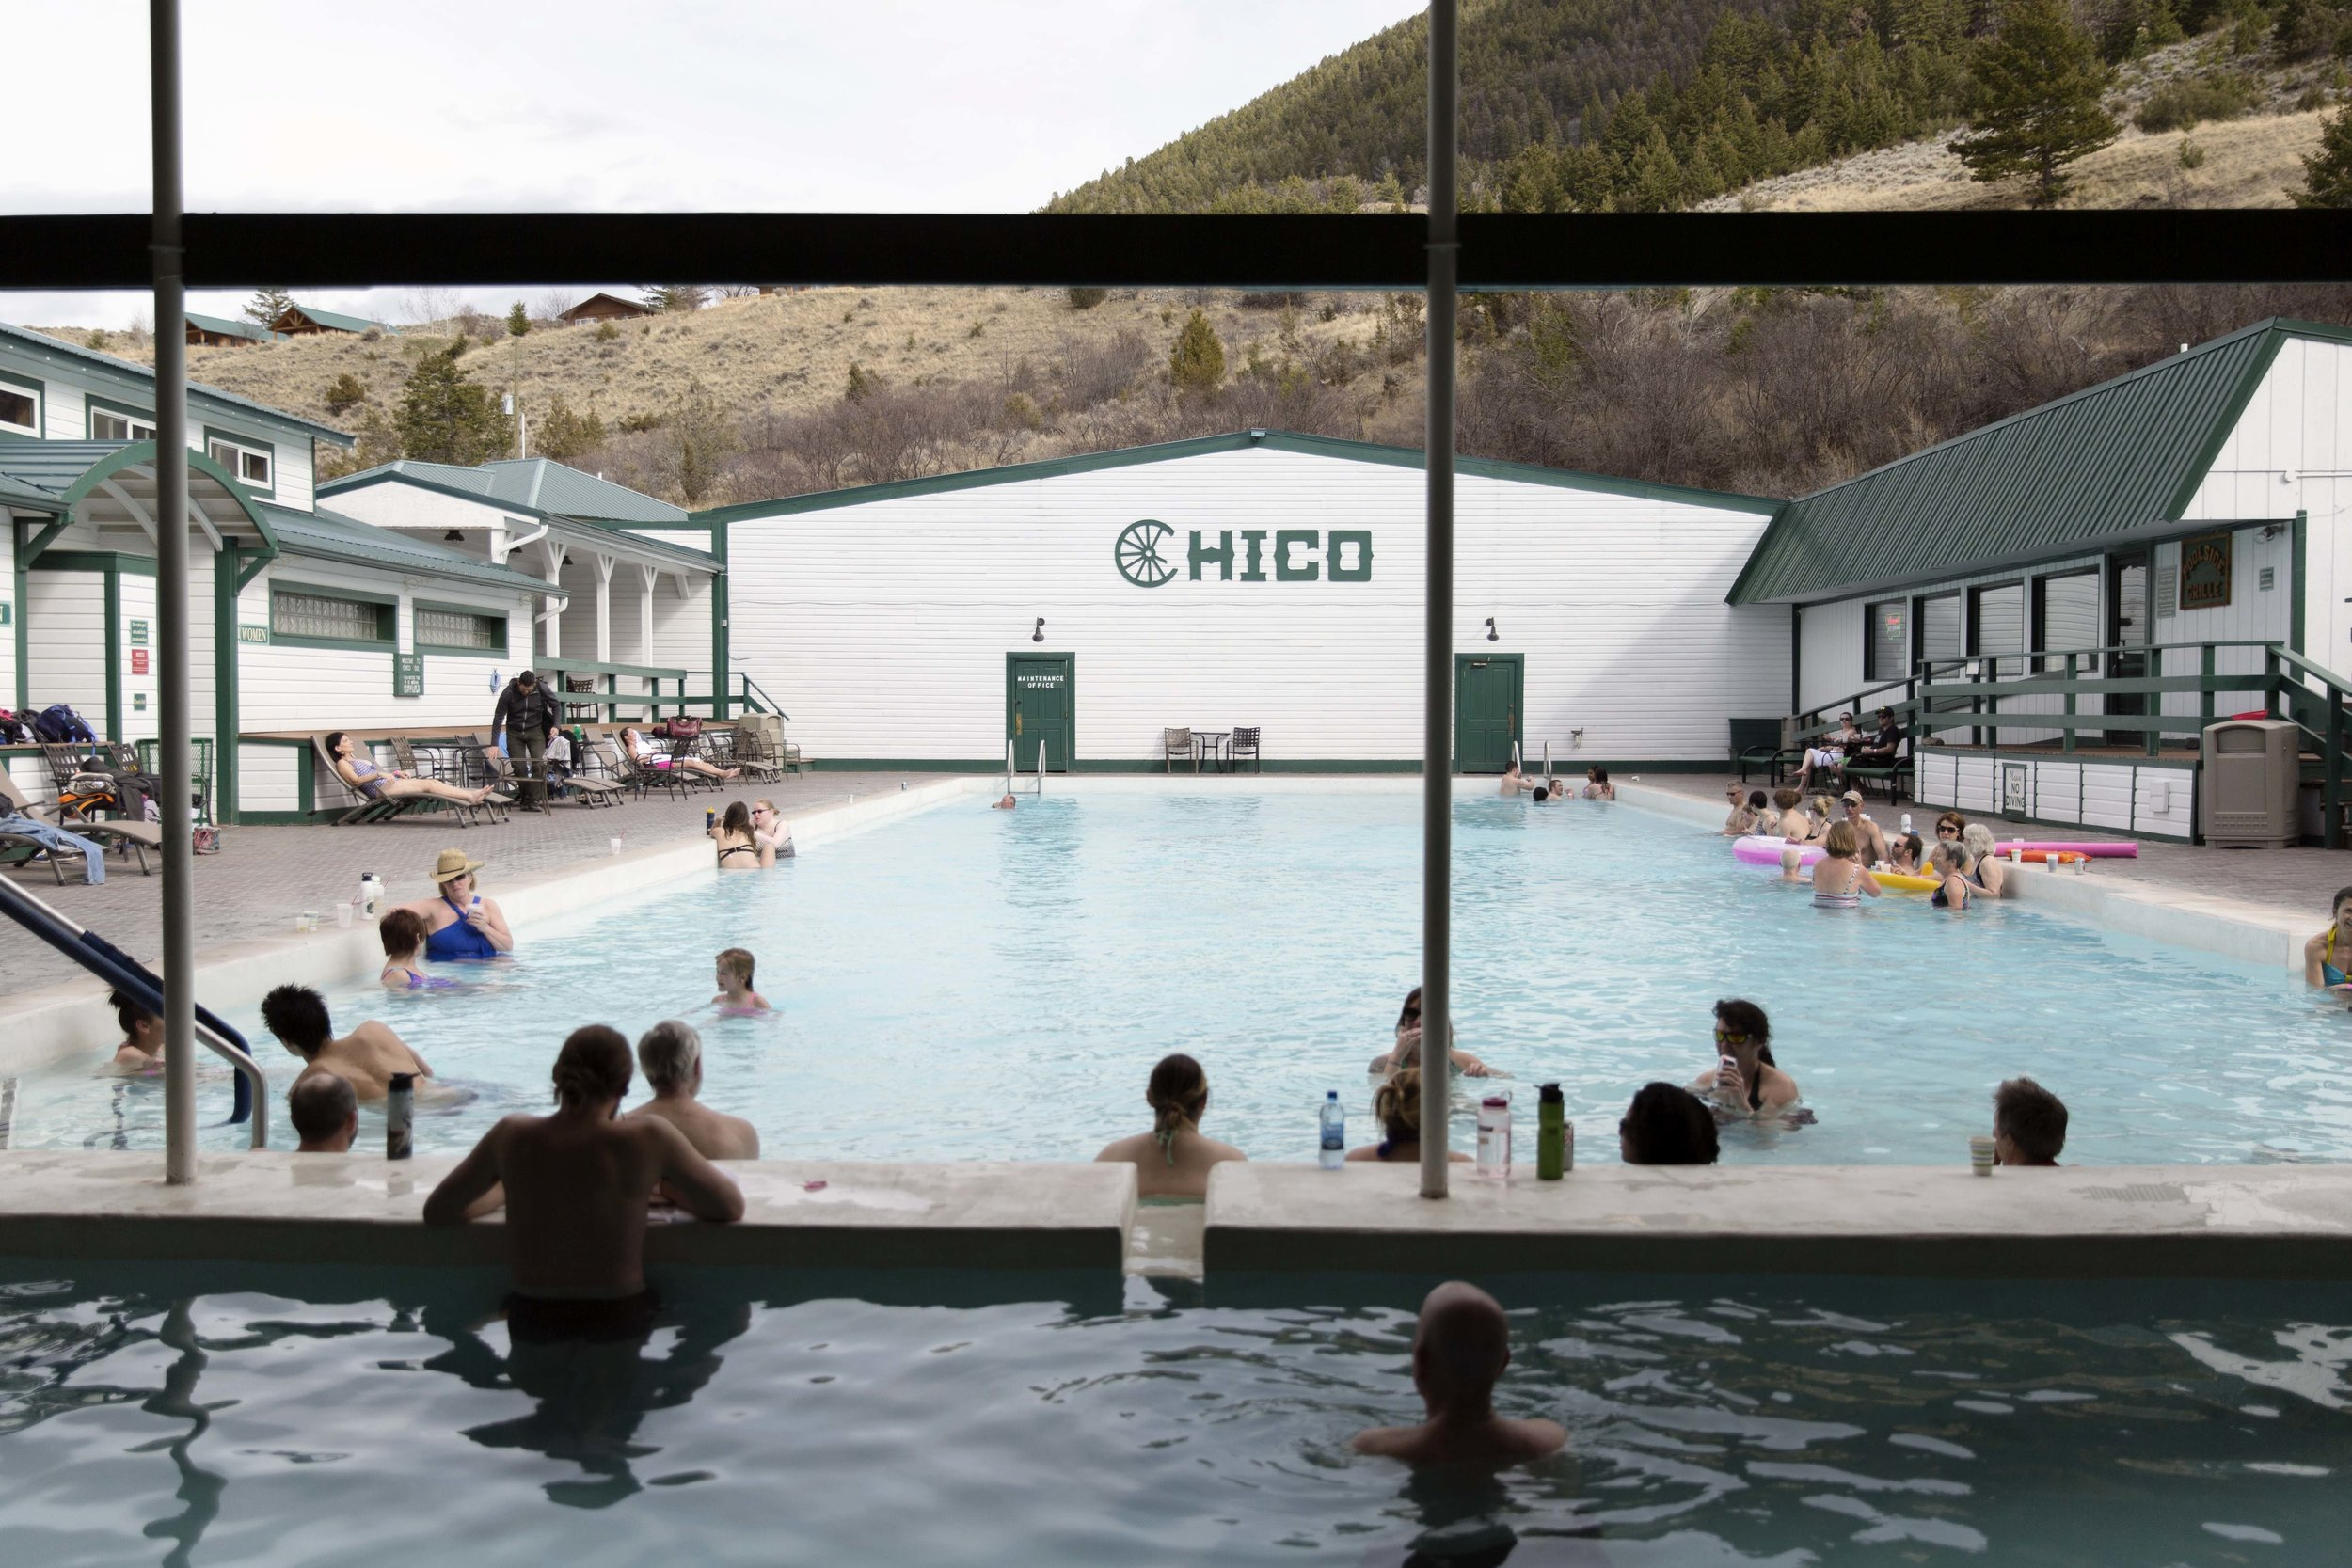 rstumpf_chicohotsprings12.jpg